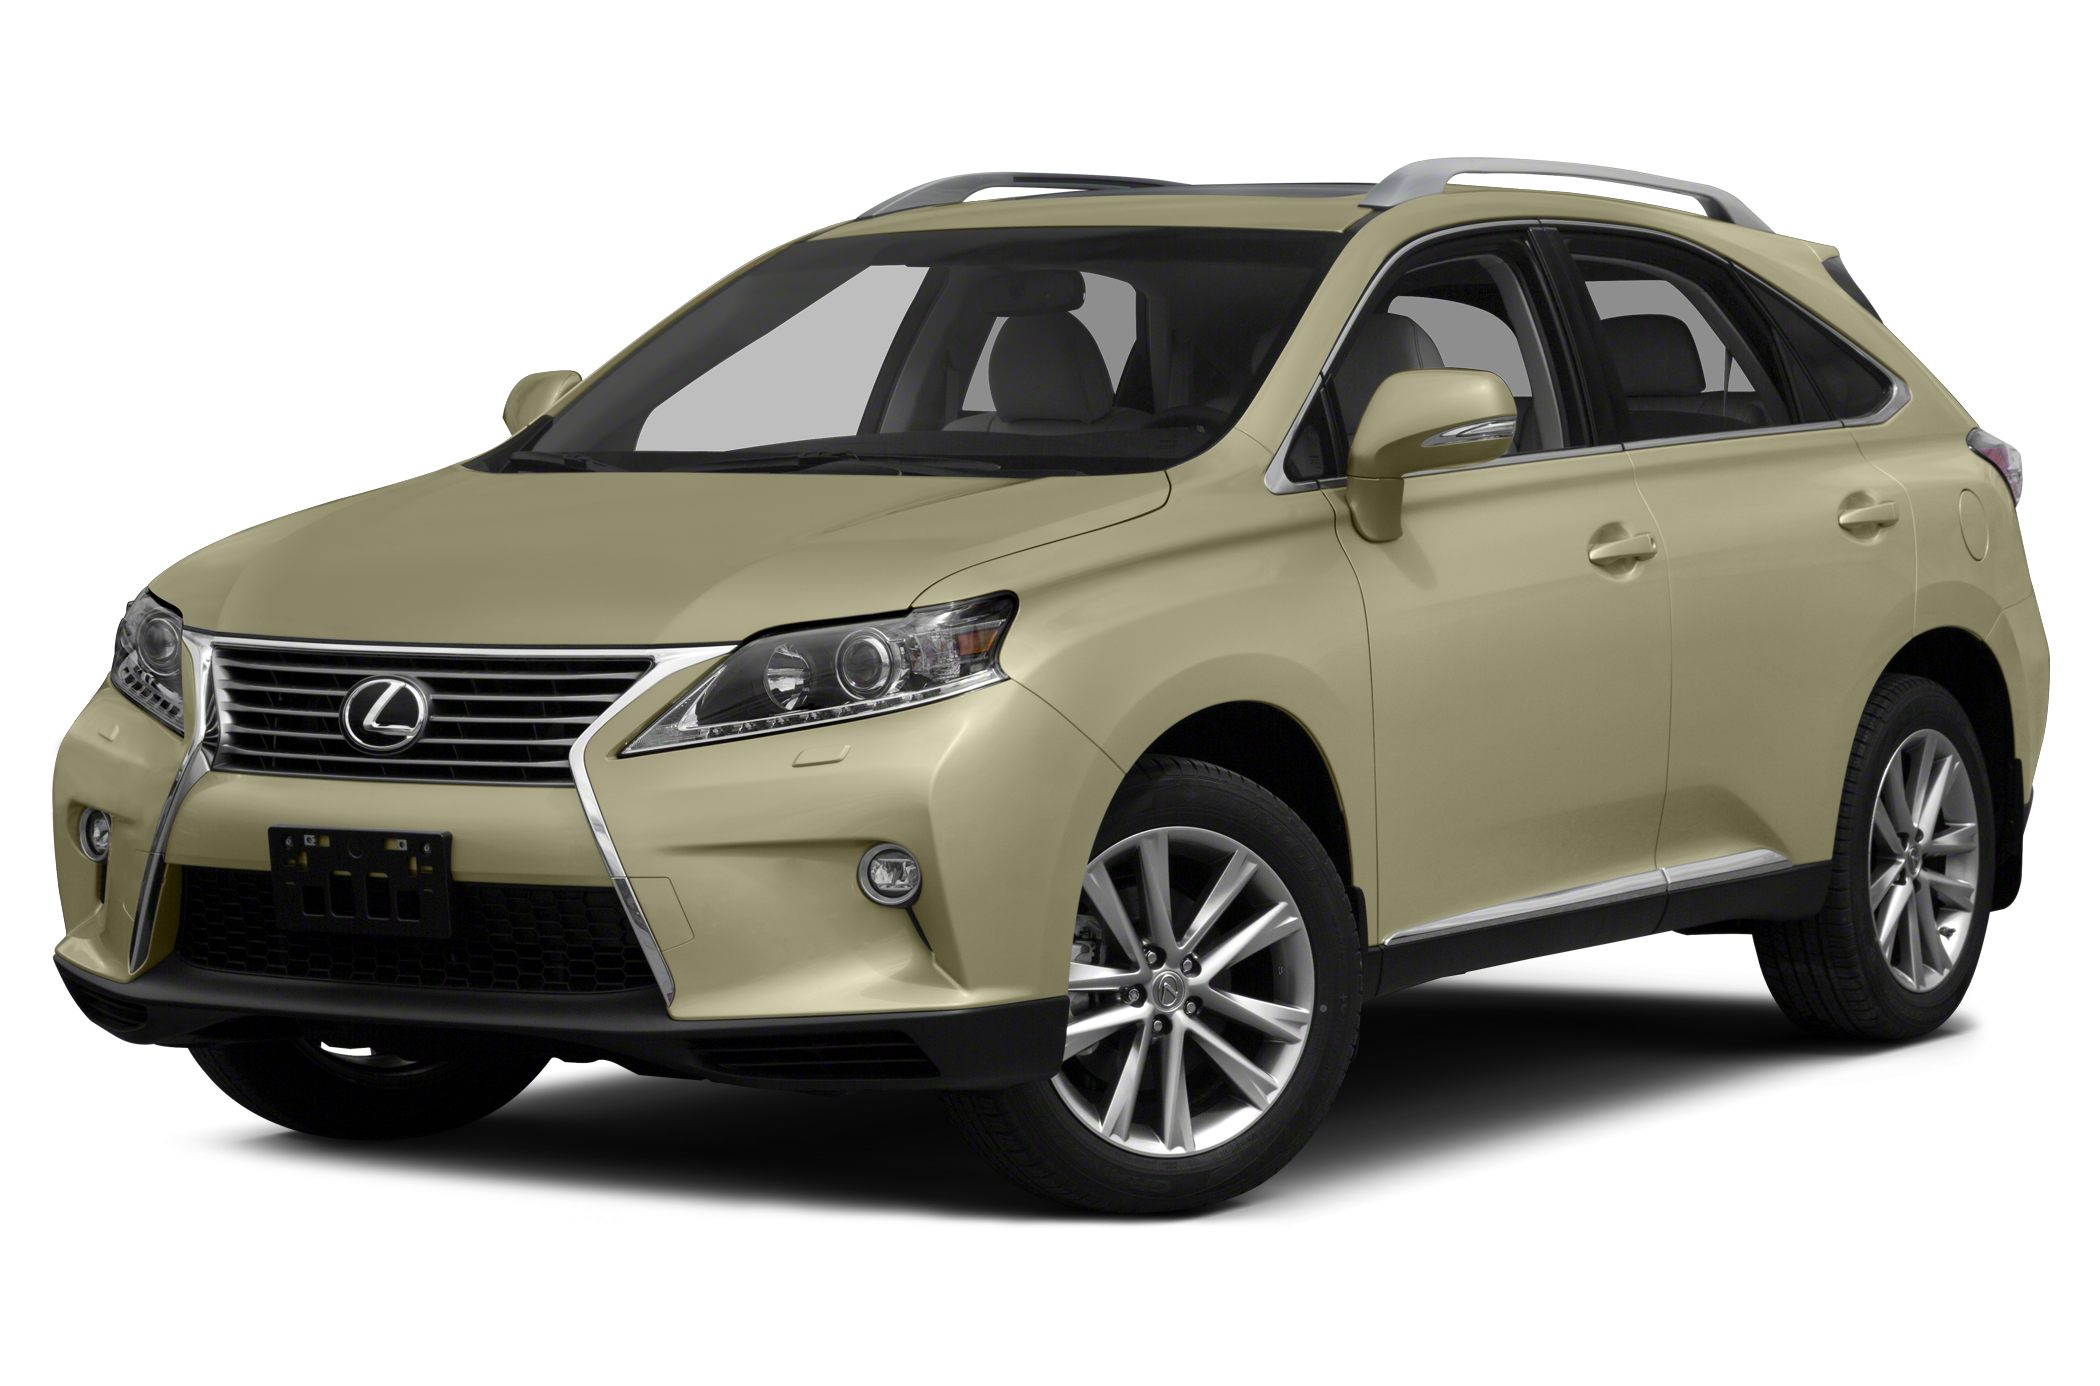 2015 Lexus RX 350 350 2015 Lexus RX 350 in White and One Year Free Maintanence Driver SeatSteeri